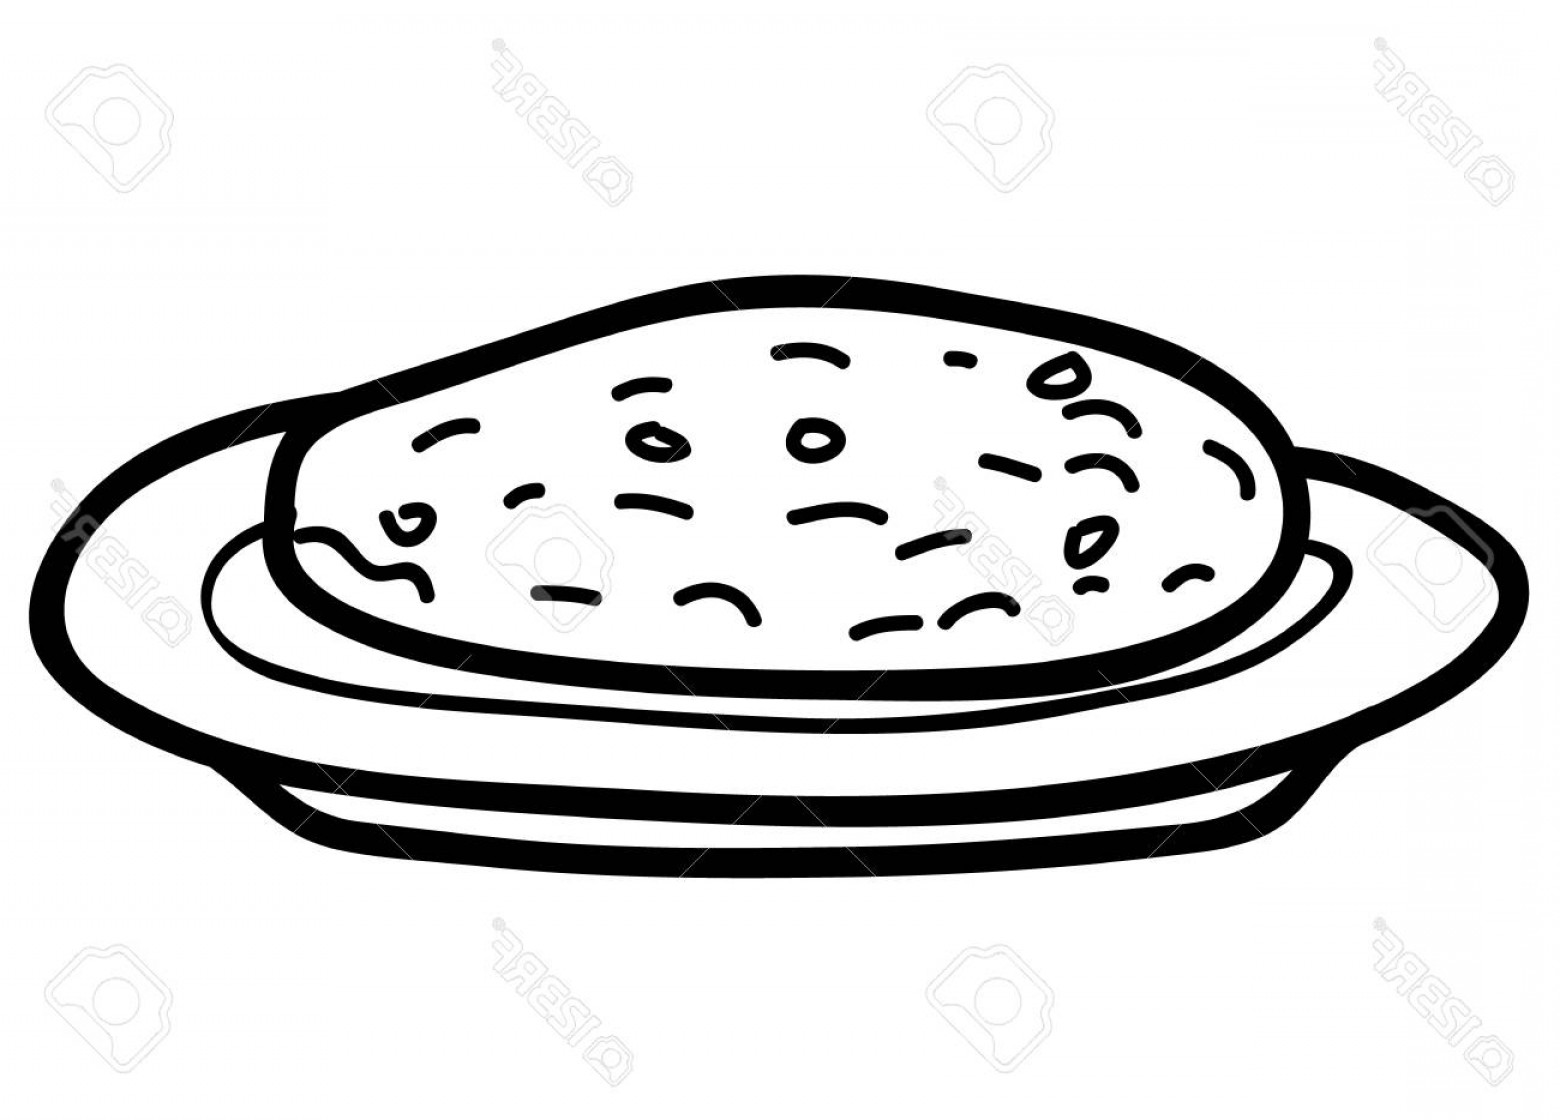 Plate Of Cookies Clipart Black And White.